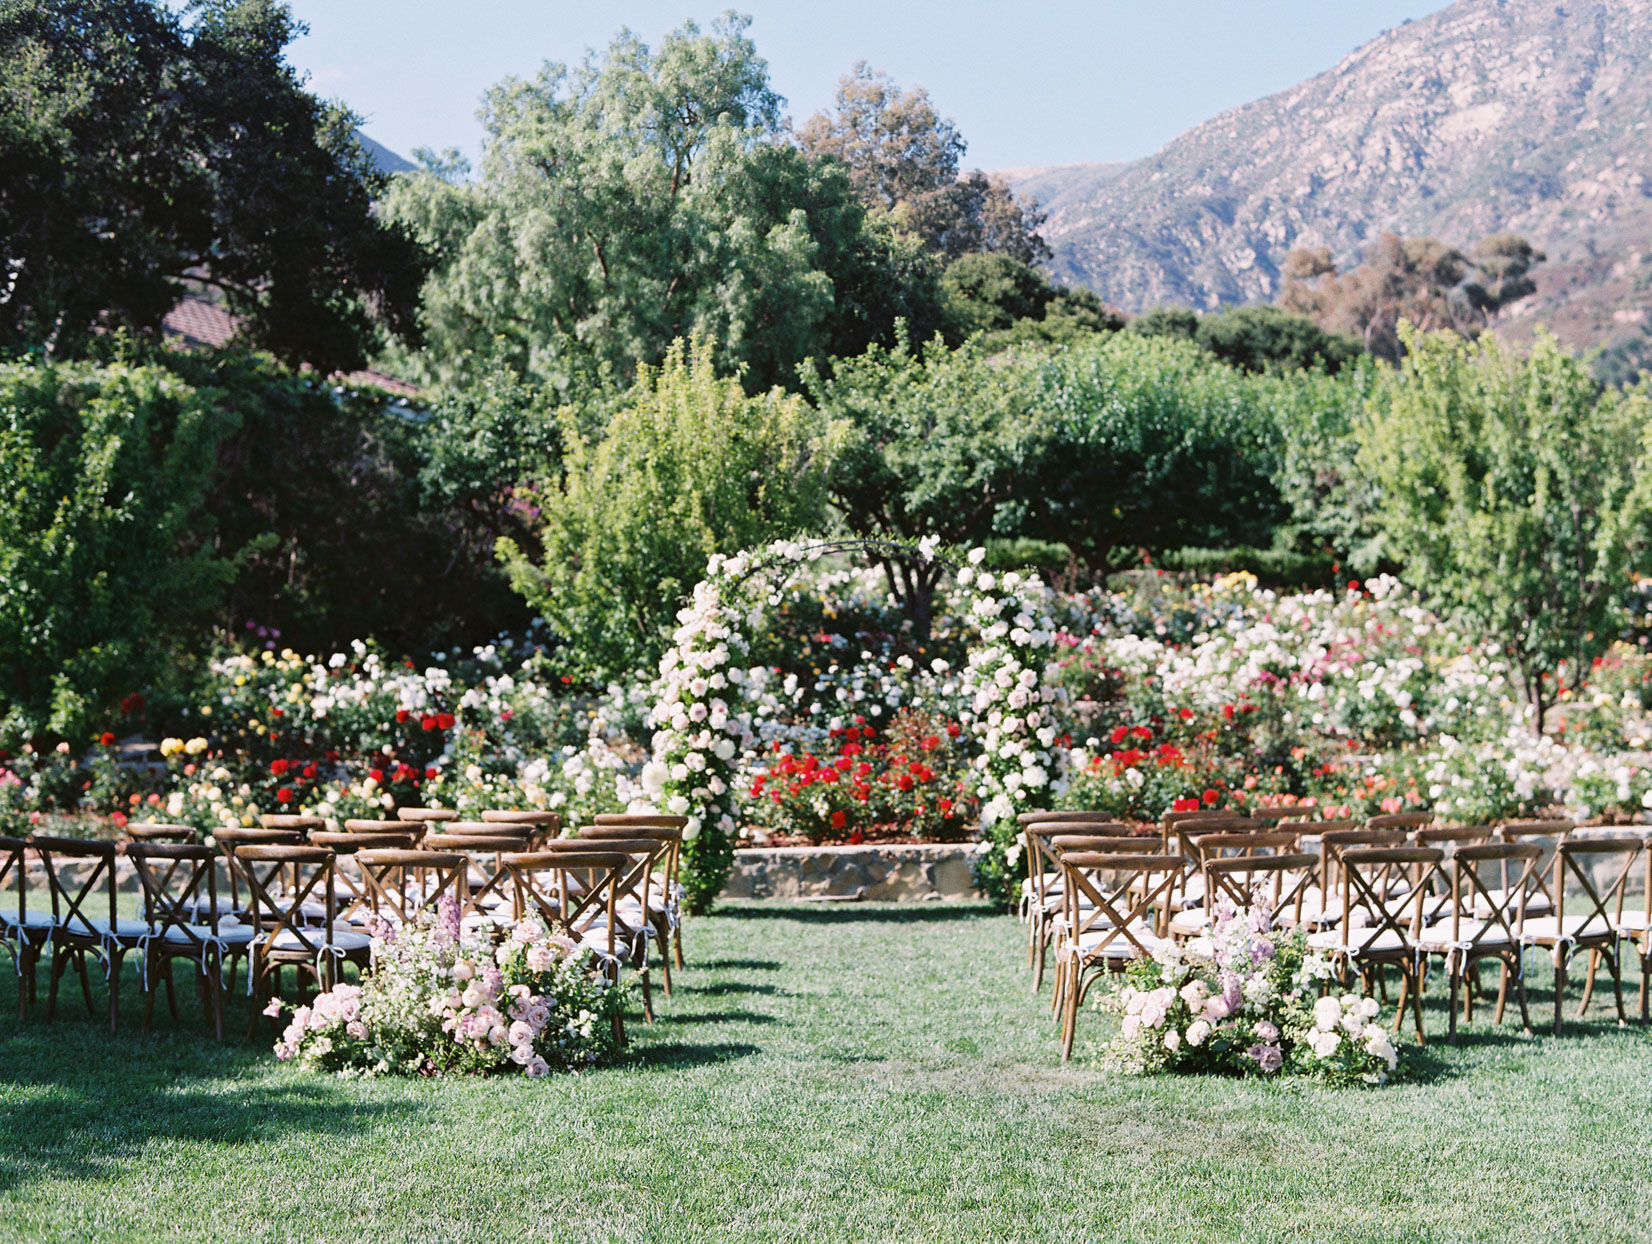 outdoor wedding ceremony in garden filled with floral decor